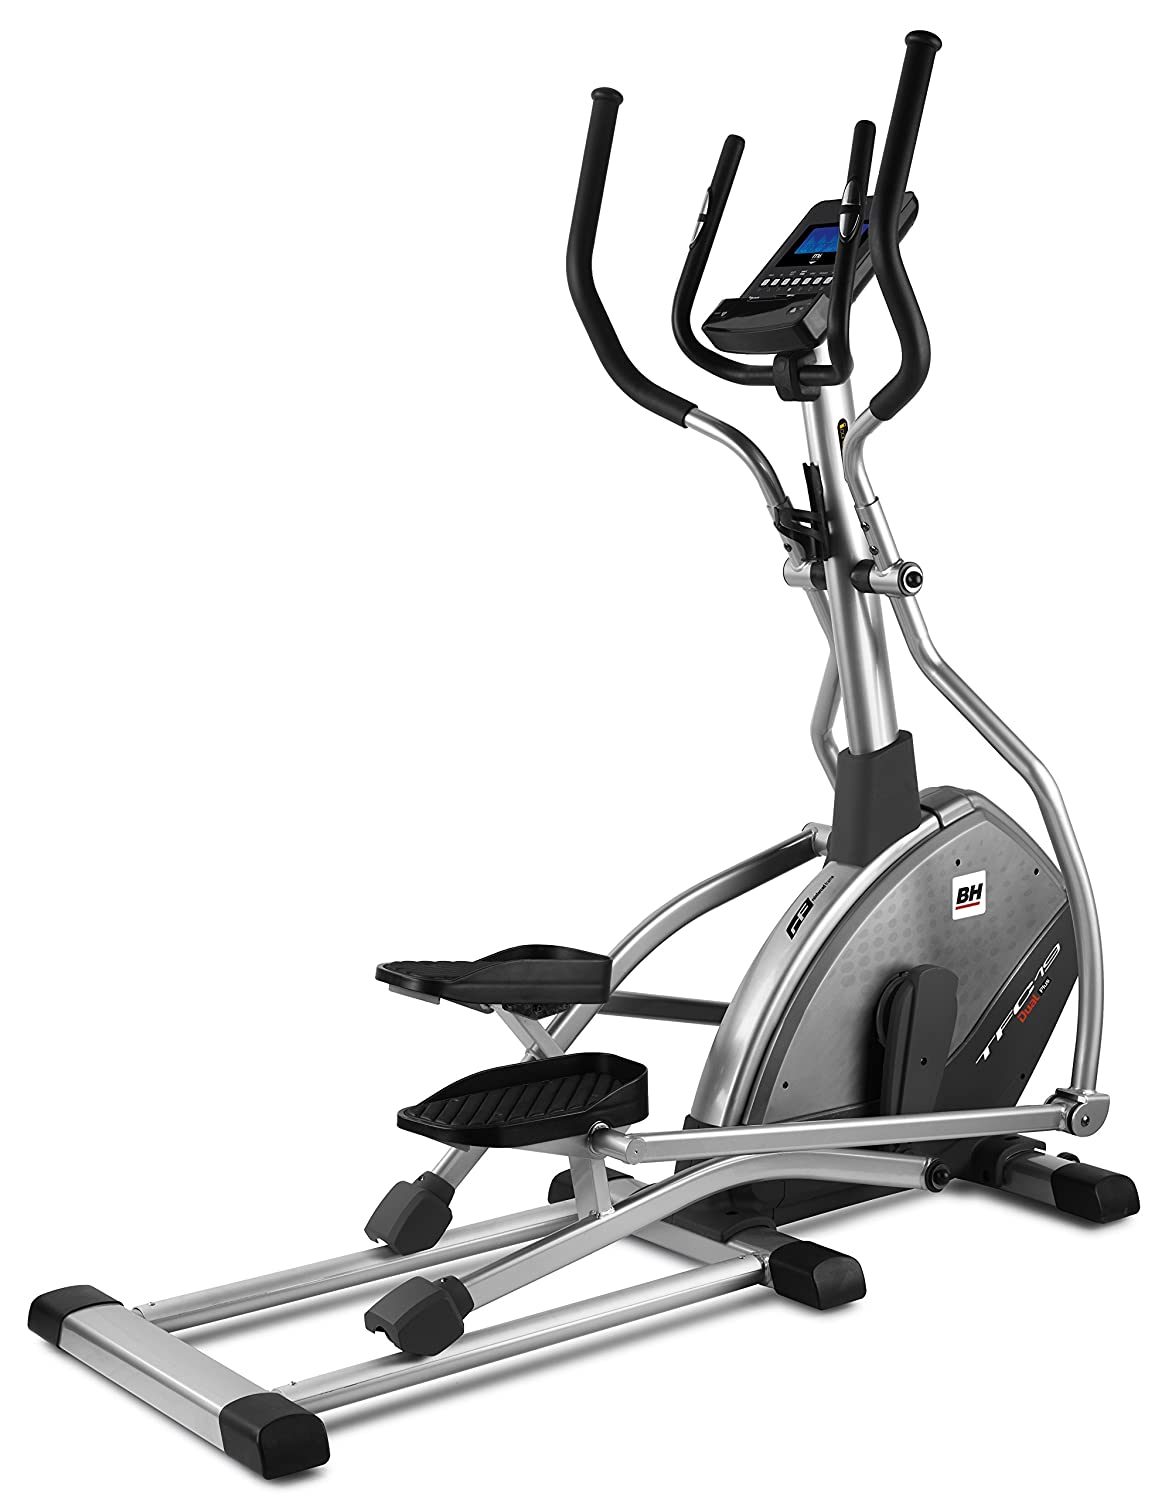 69f53205fd8 BH Fitness - Bicicleta elíptica tfc19 Dual Plus + Dual Kit be  Amazon.es